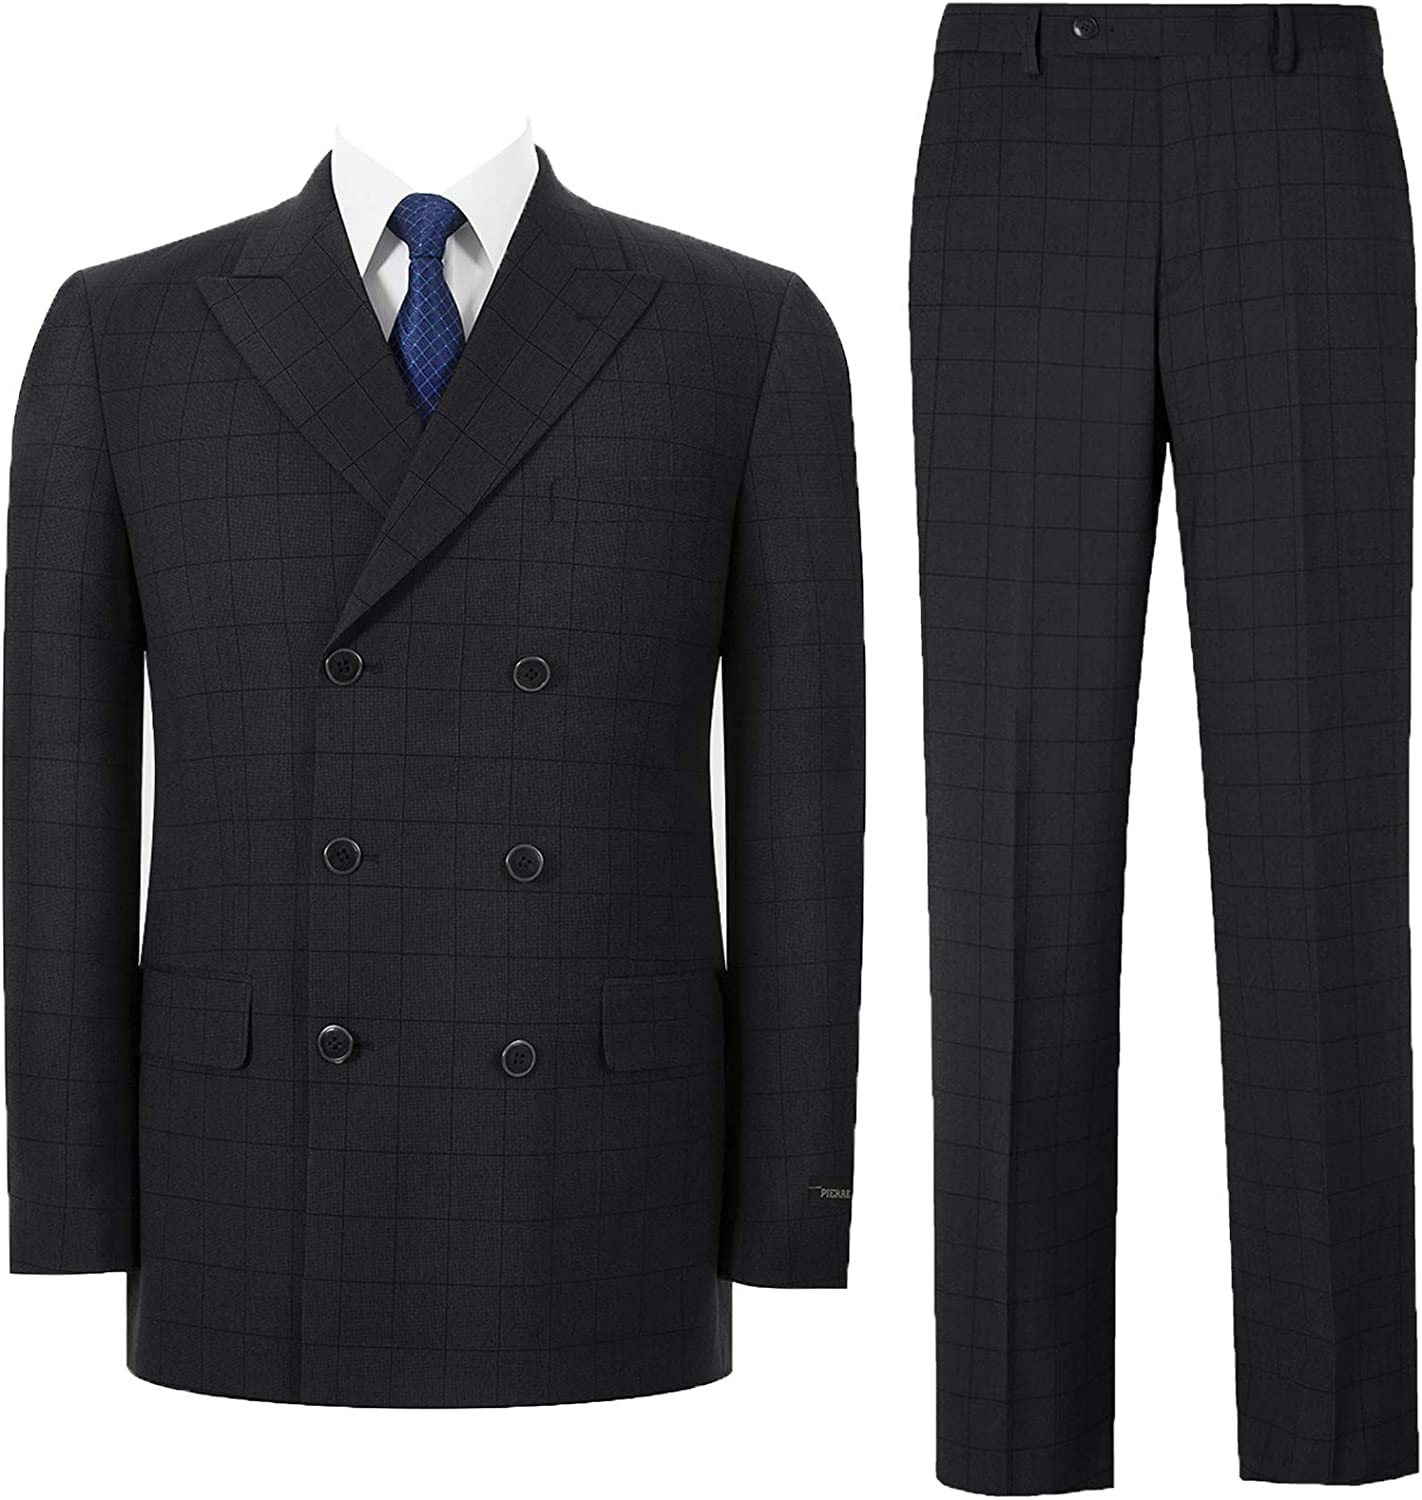 QSYJ Mens Double Breasted 2 Piece Suit Classic Fit Peak Lapel Blazer Jacket & Trousers